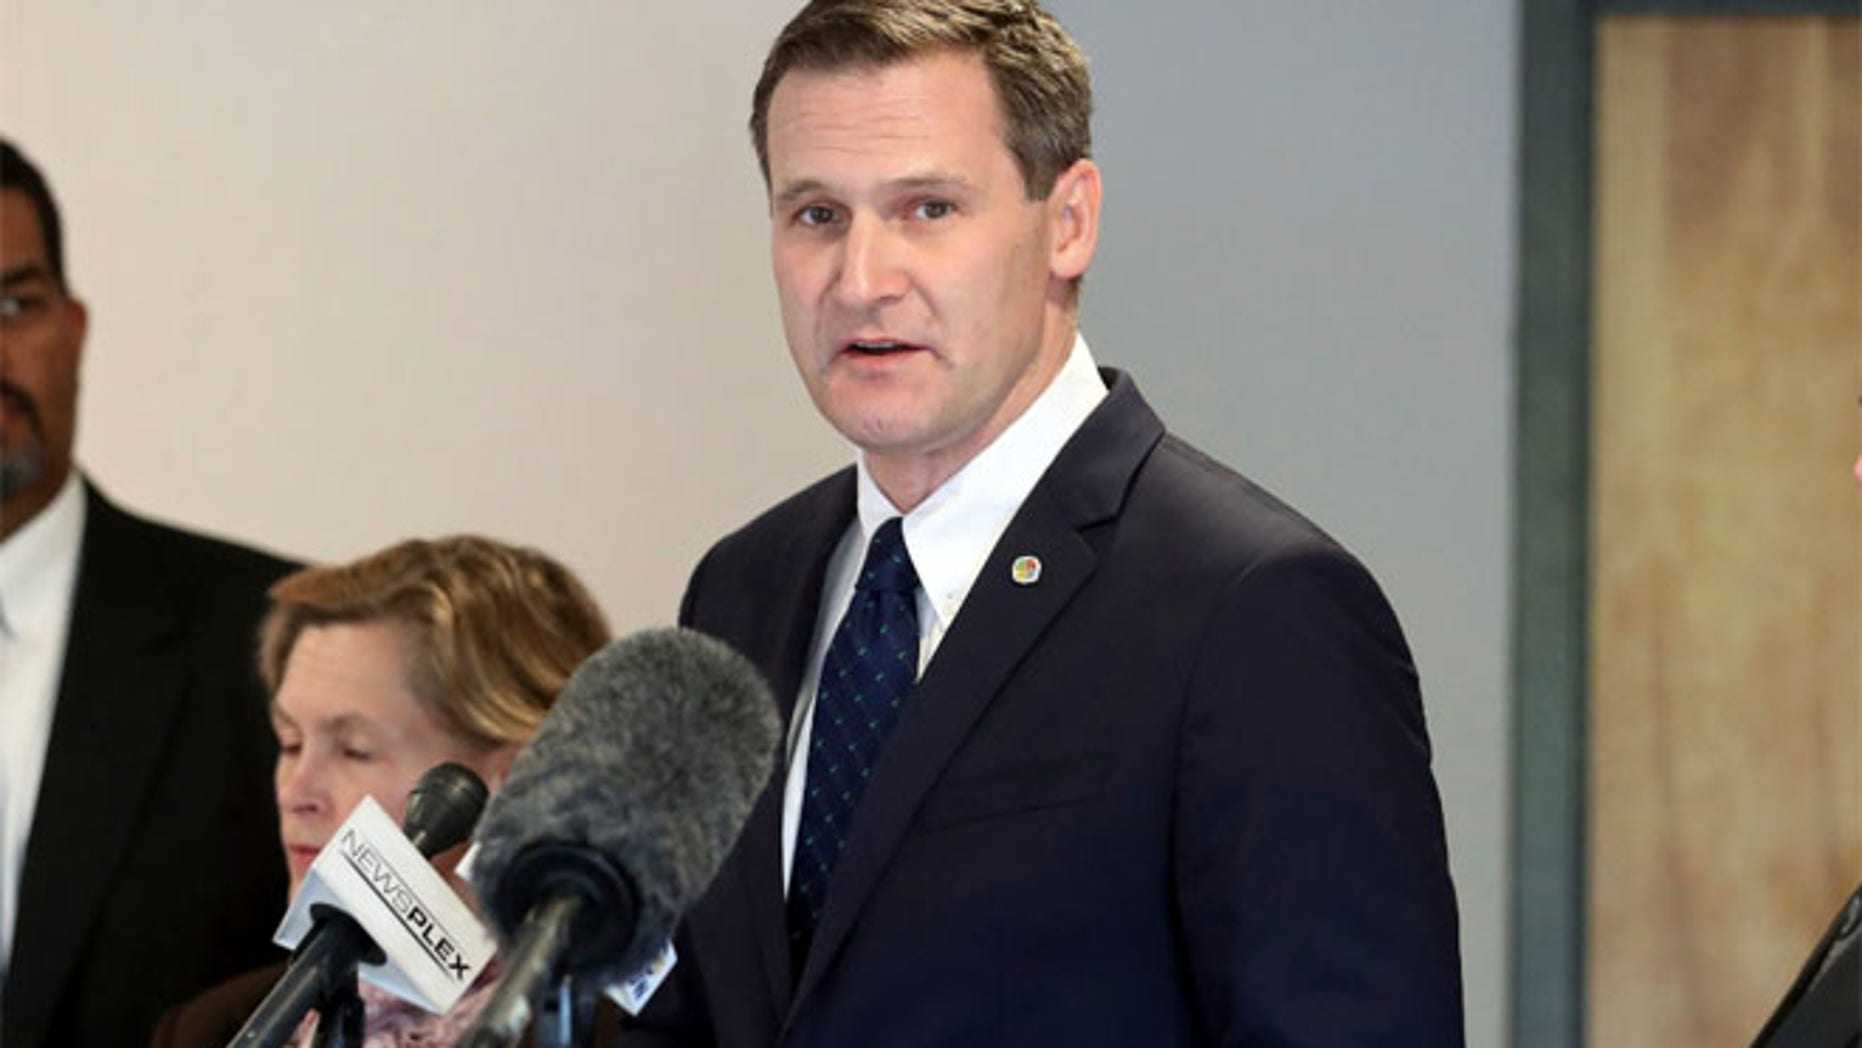 FILE 2016: Charlottesville Mayor Mike Signer, center, during a press conference.